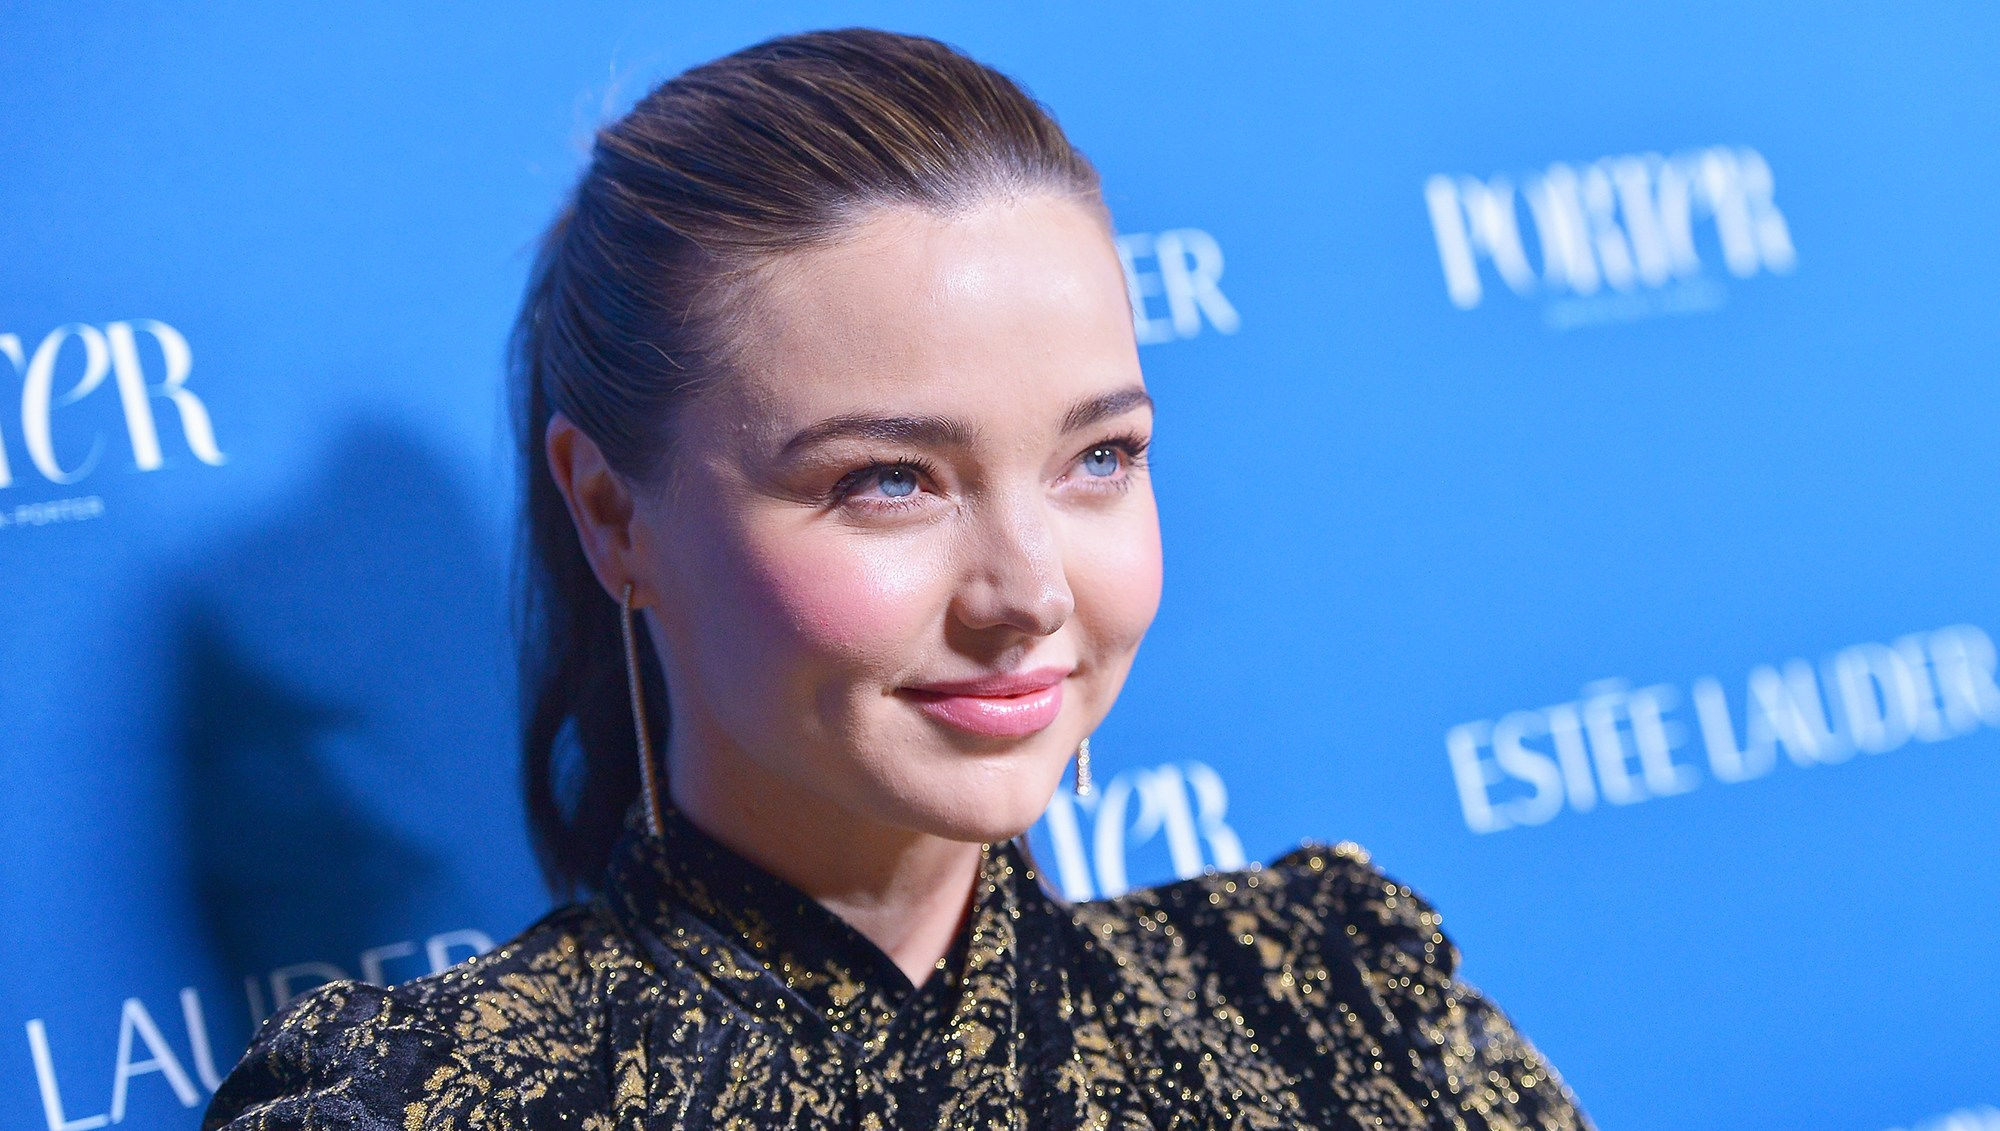 Miranda Kerr Is Understandably Emotional About Her Baby